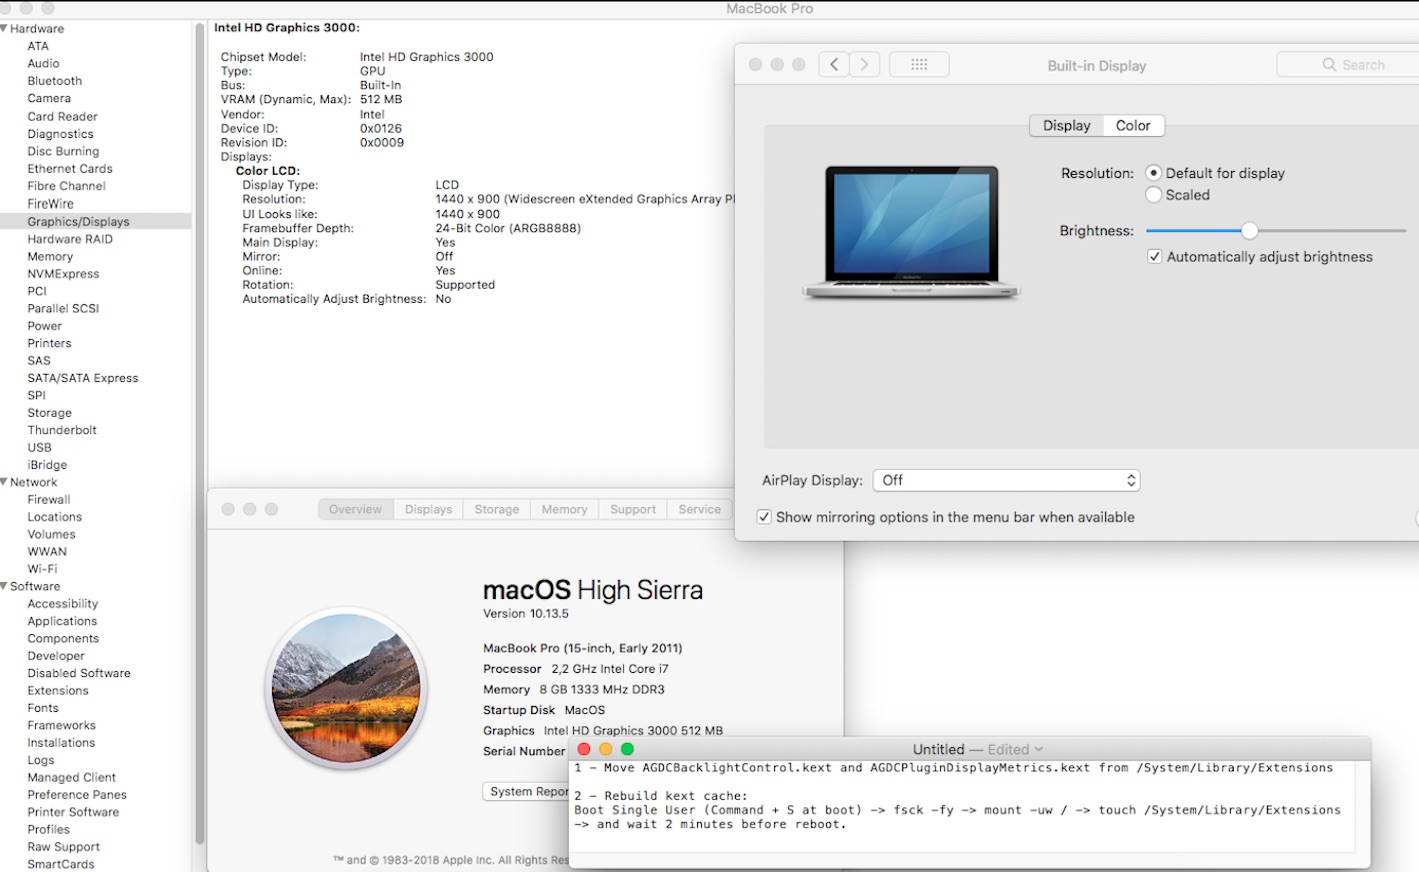 grub-amd-macbookpro_2011-highsierra-10 13 5-brightness-slider